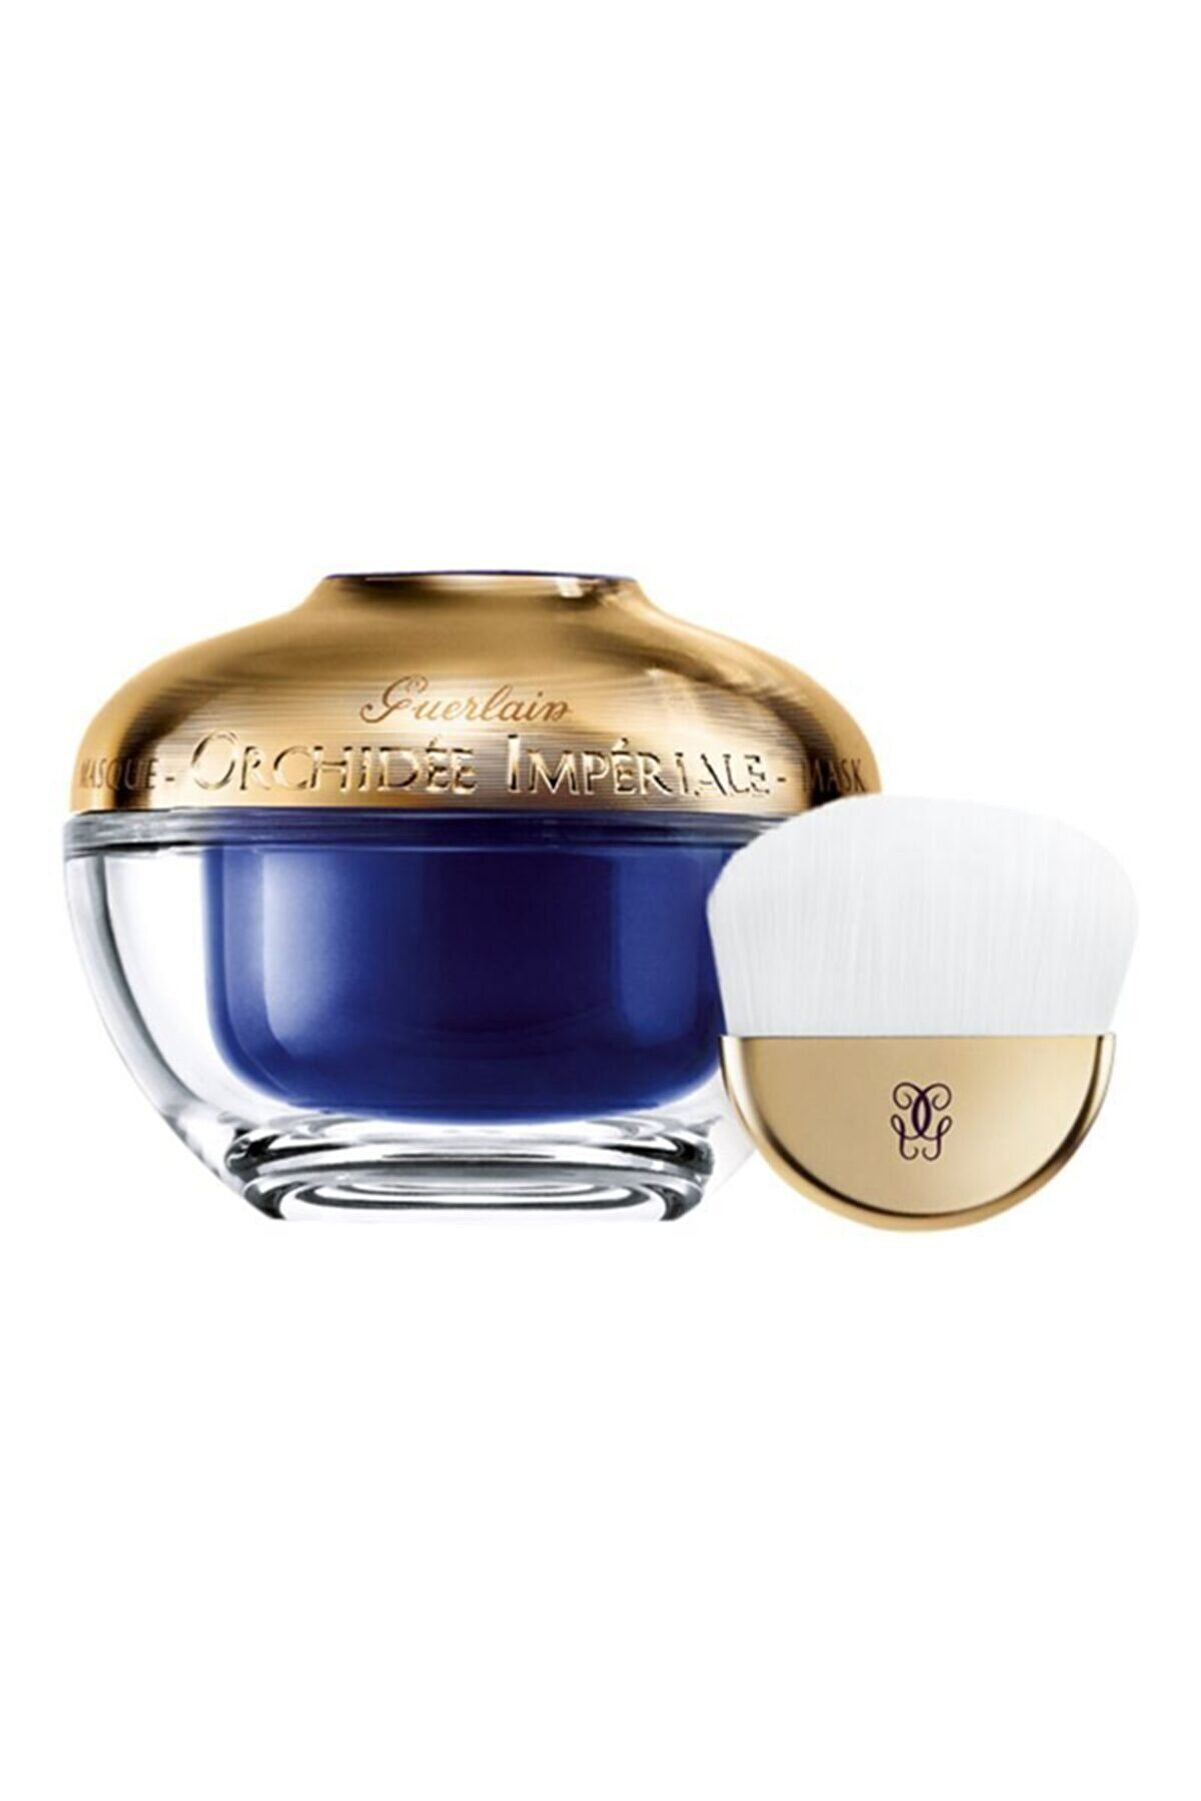 Guerlain Orchidee Imperiale The Mask 75 ml Maske